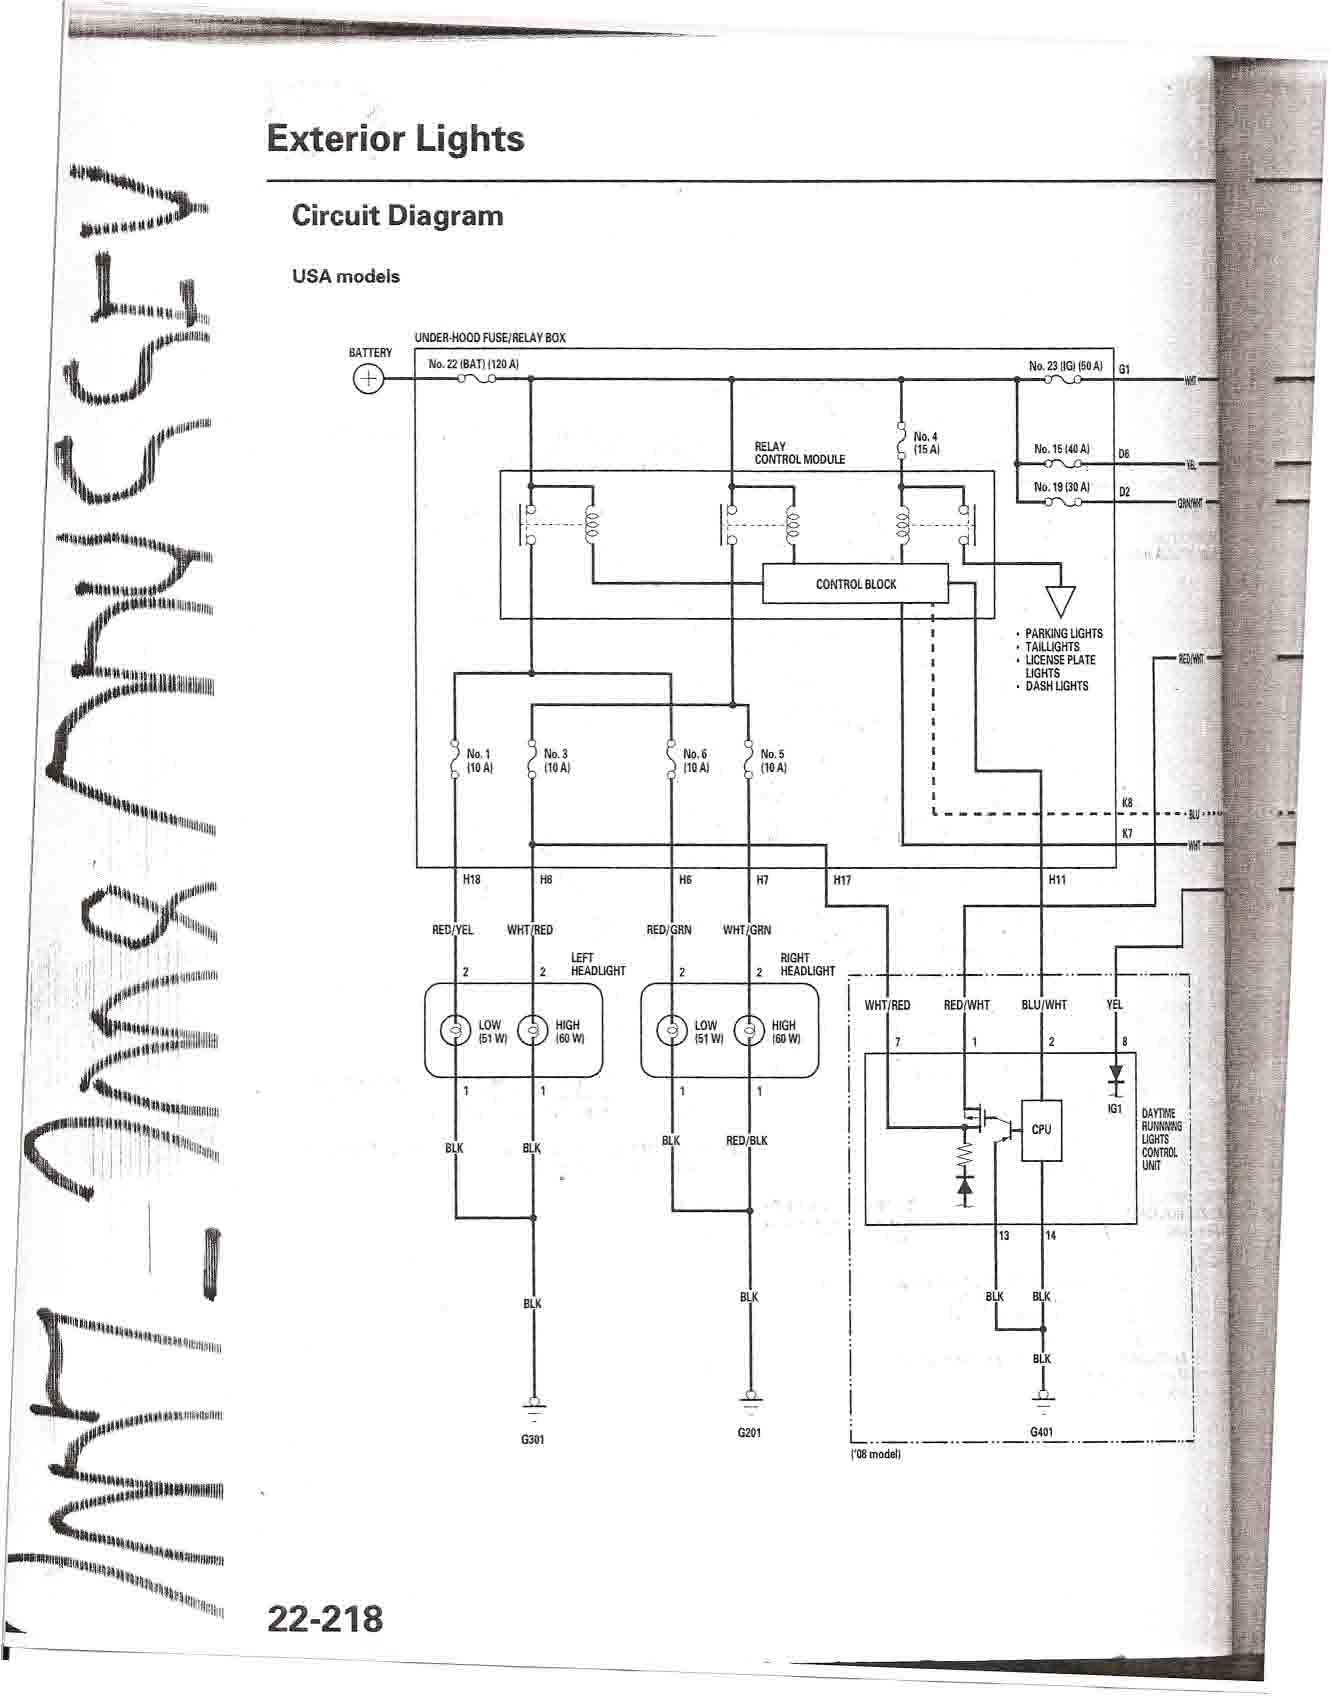 6941d1225334065 adding auto lights 08 ex l ody lights wipers_page_3 adding auto on lights to 08 ex l page 2 GM Wiper Motor Wiring Diagram at gsmportal.co